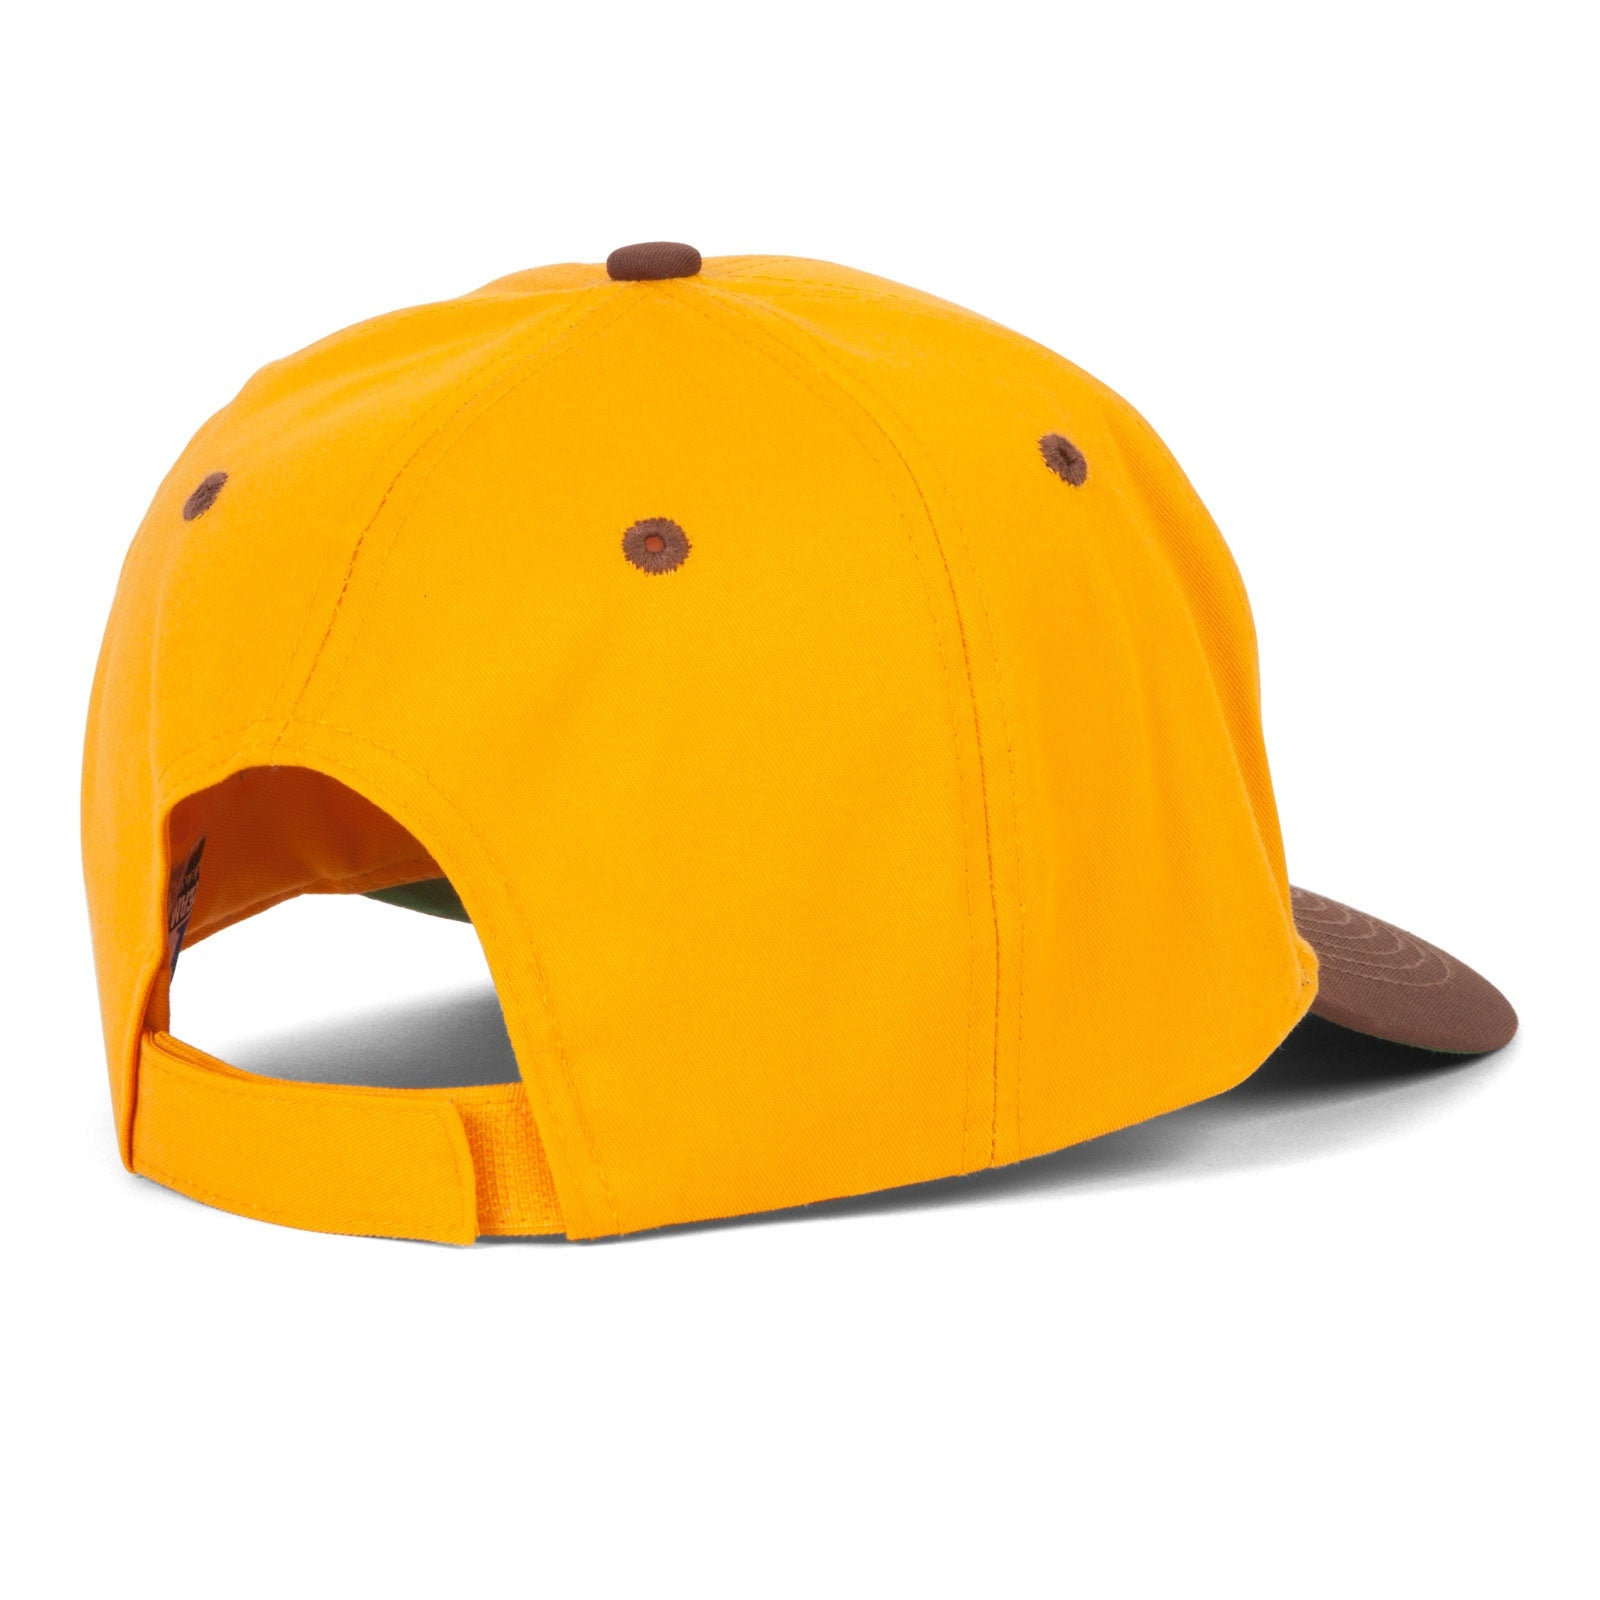 new concept 0c22f 20aa2 ... usa shop mlb cooperstown adult san diego padres gold brown hat cap  adjustable hook and loop